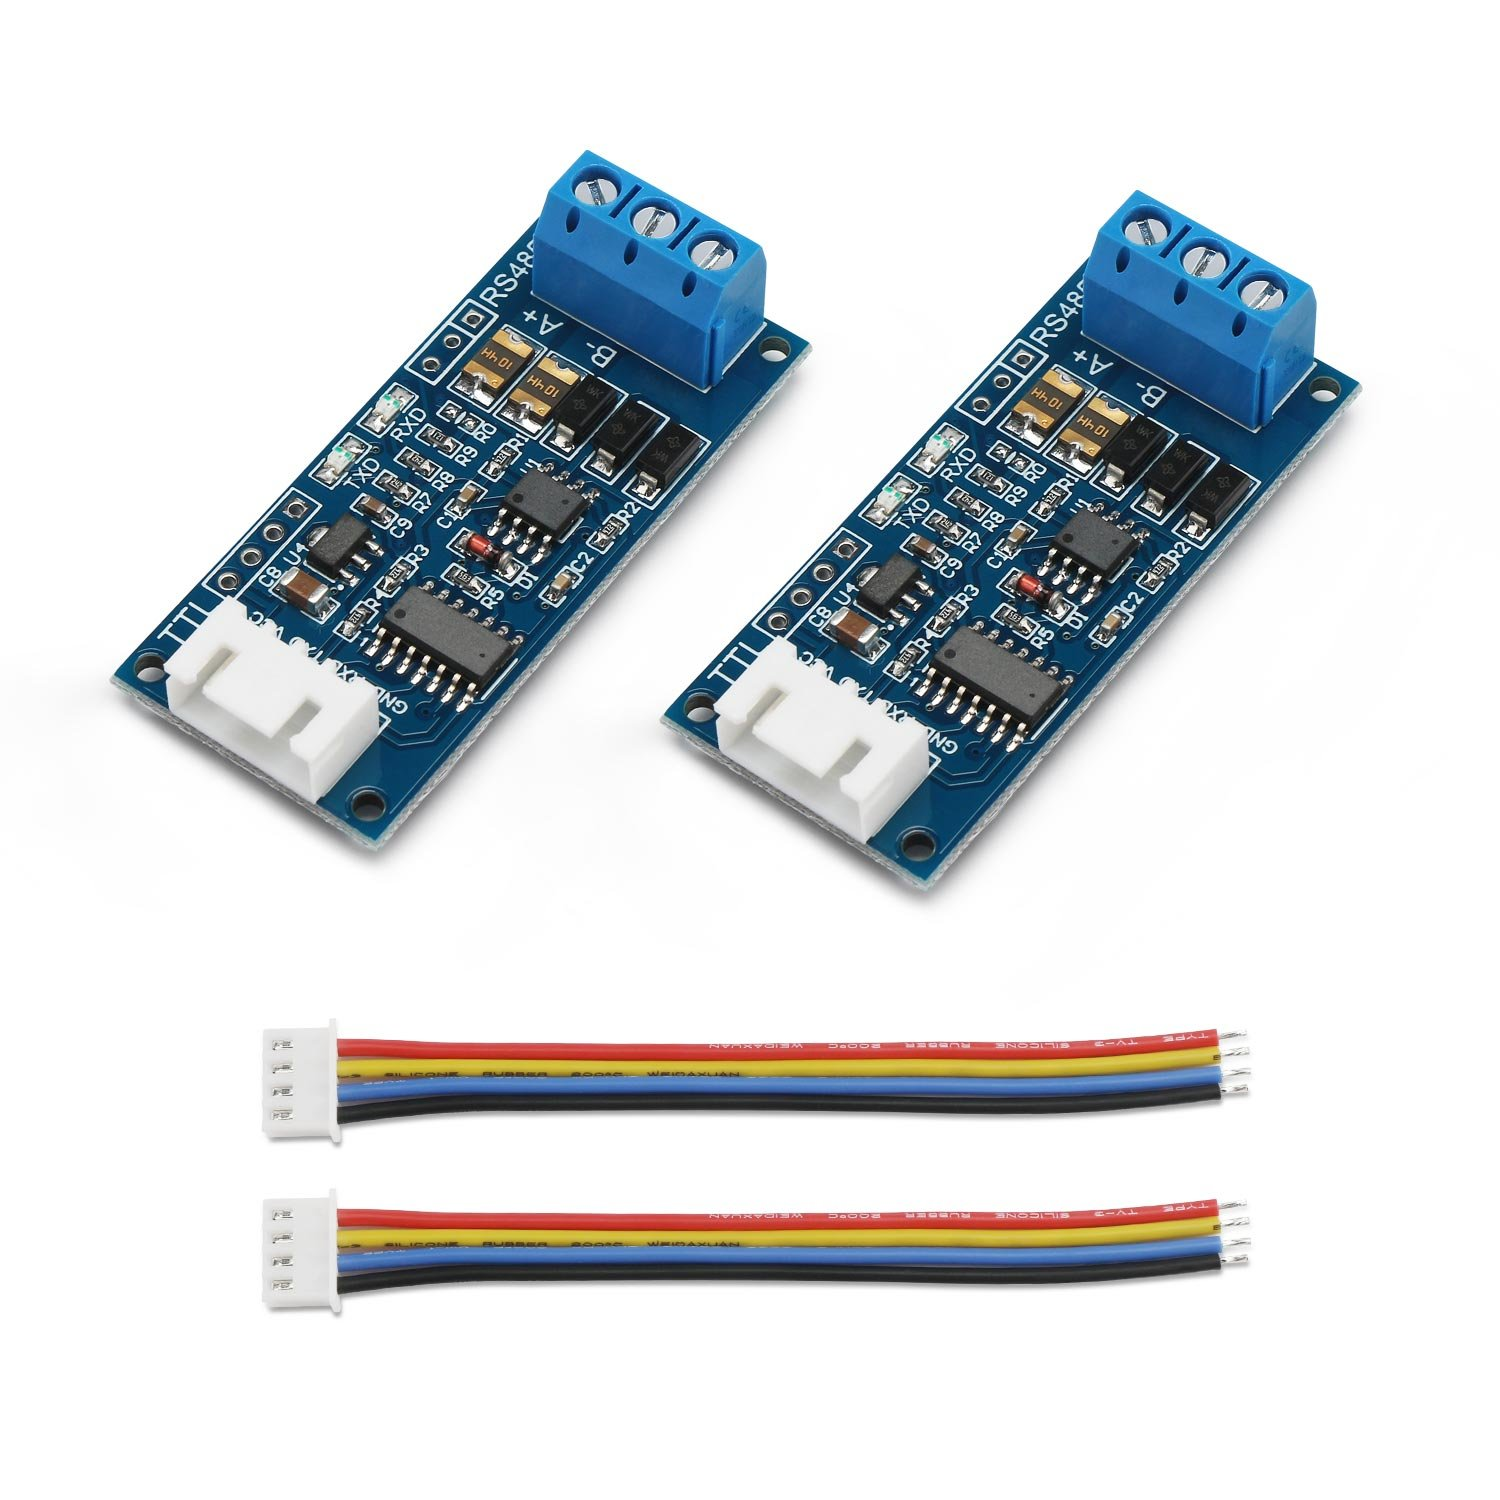 2pcs TTL to RS485 Adapter Module, DROK 485 to TTL Signal Single Chip Serial Port Level Converter 3.3V 5V Board with RXD, TXD Indicator Lights by DROK